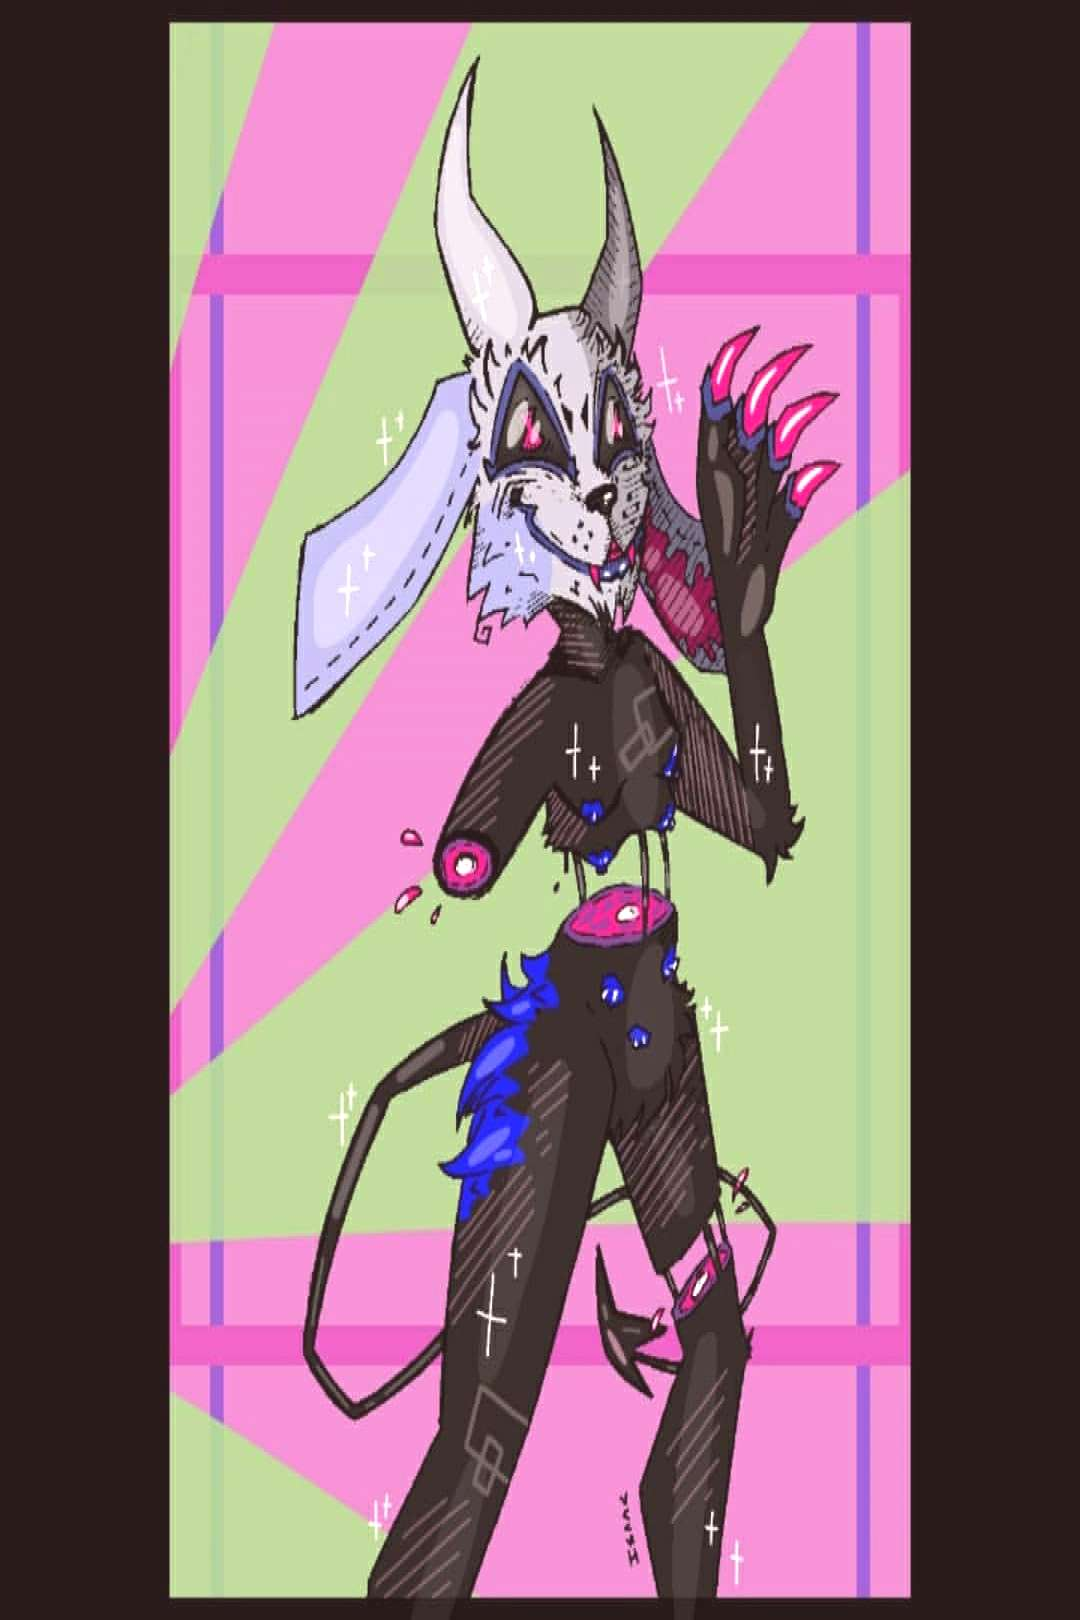 Art Trade with an amazing person on Furry Amino! His/Her characte